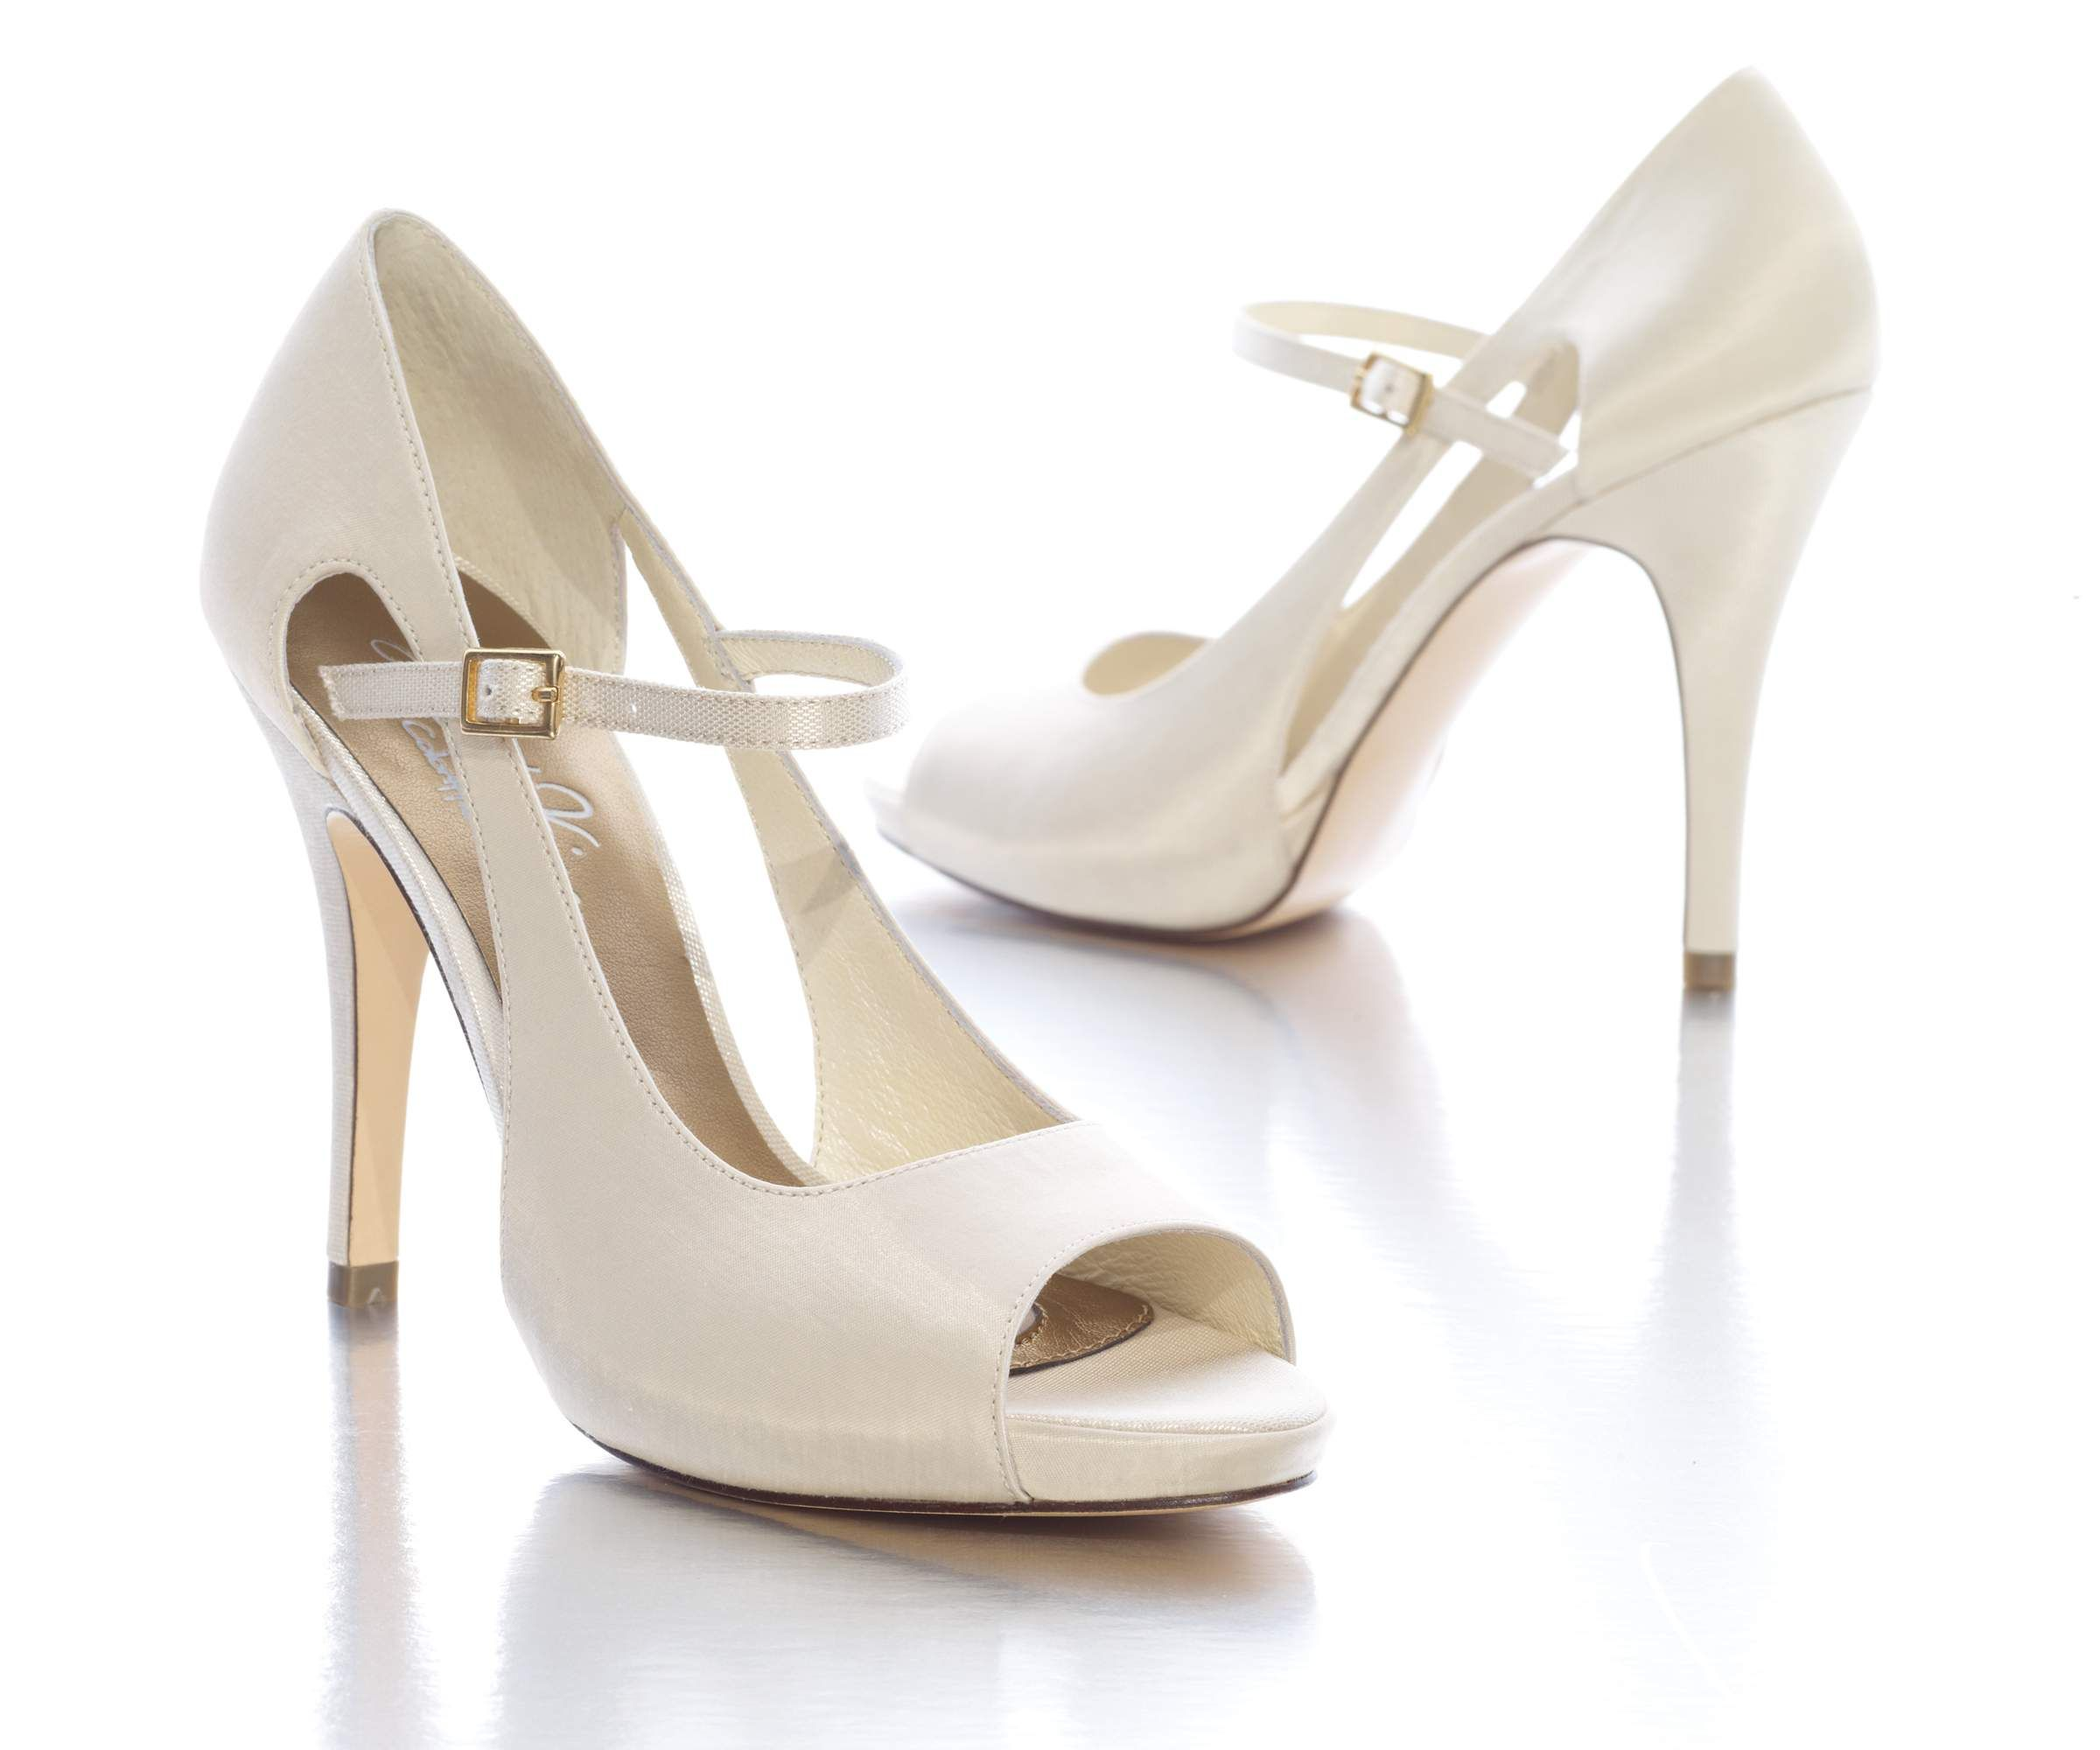 17 best images about wedding shoes on pinterest wedding shoes lace ...